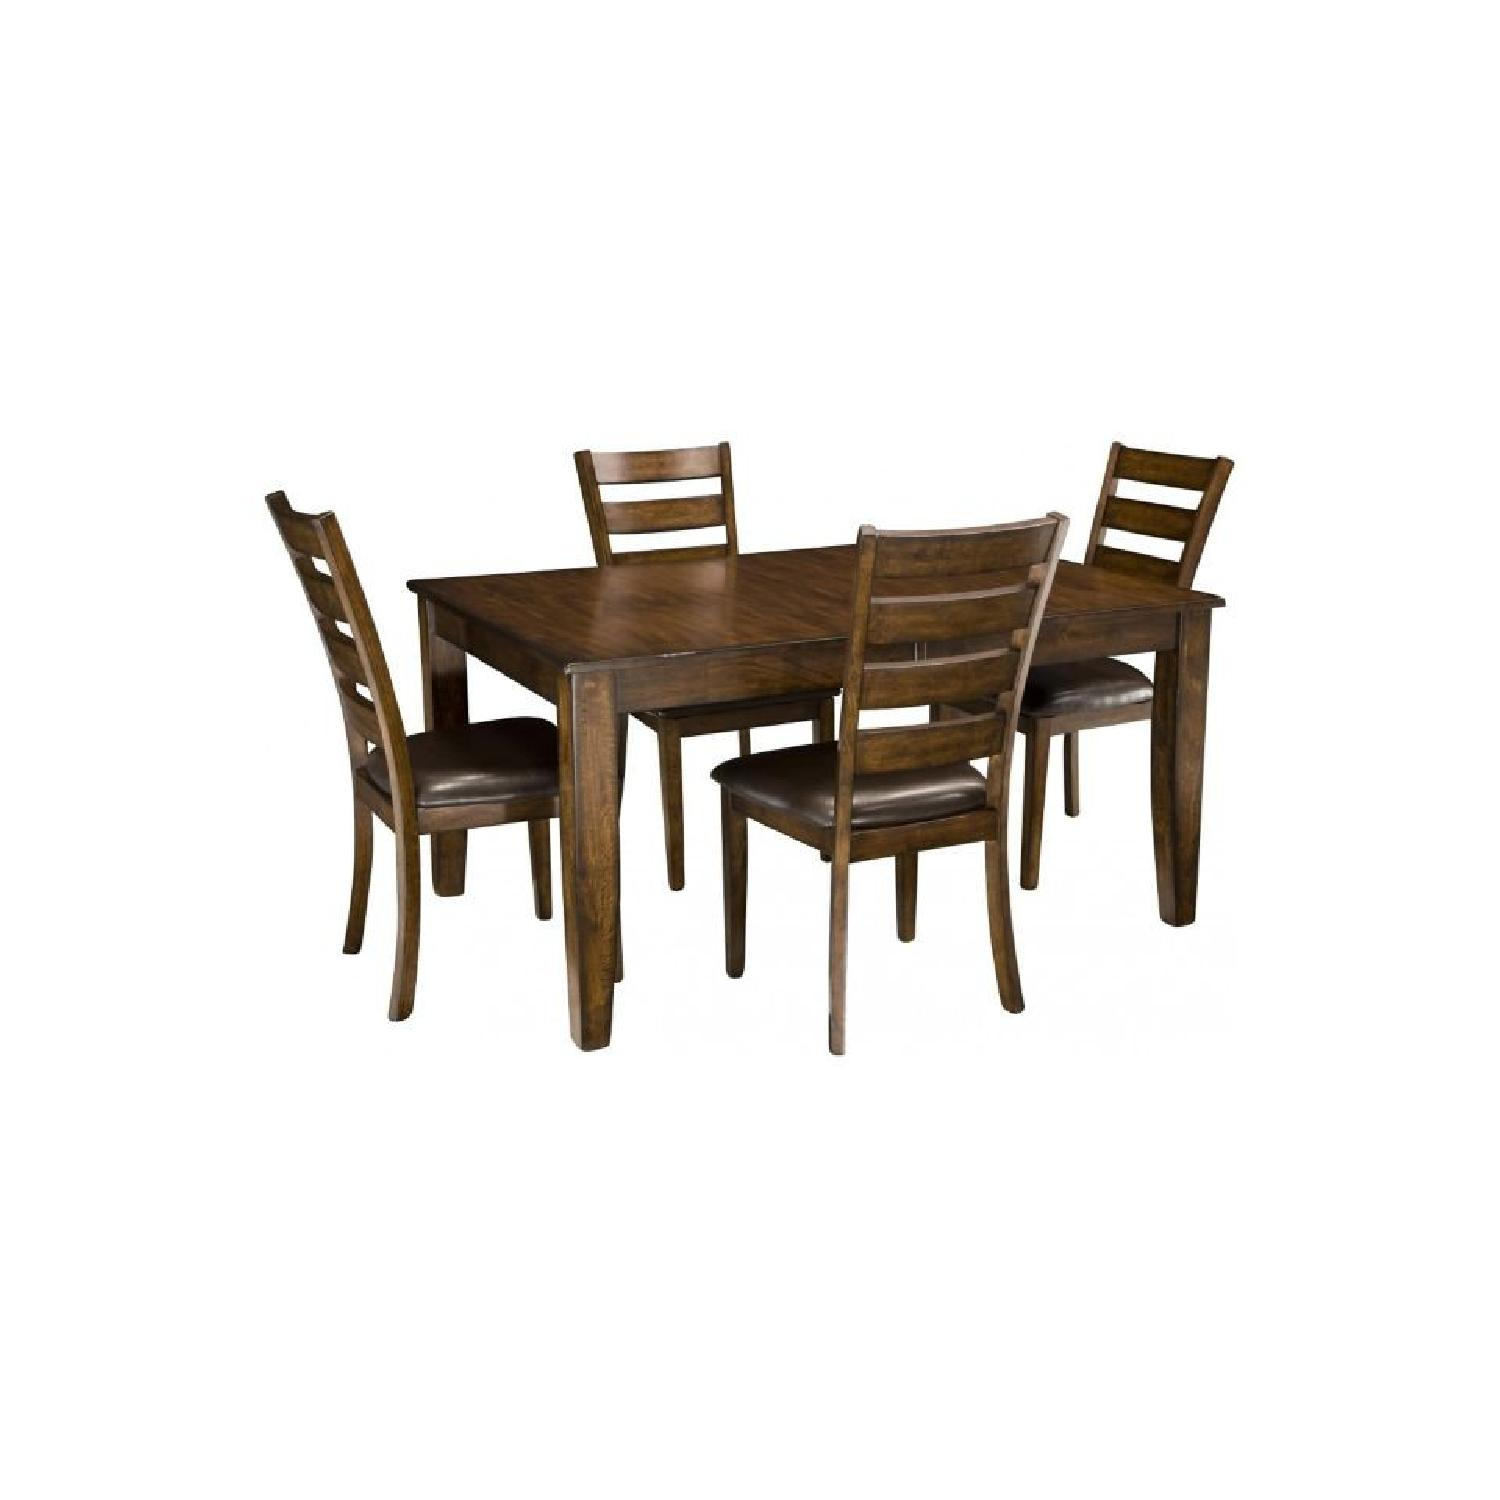 Raymour & Flanigan Kona 5-Piece Dining Set